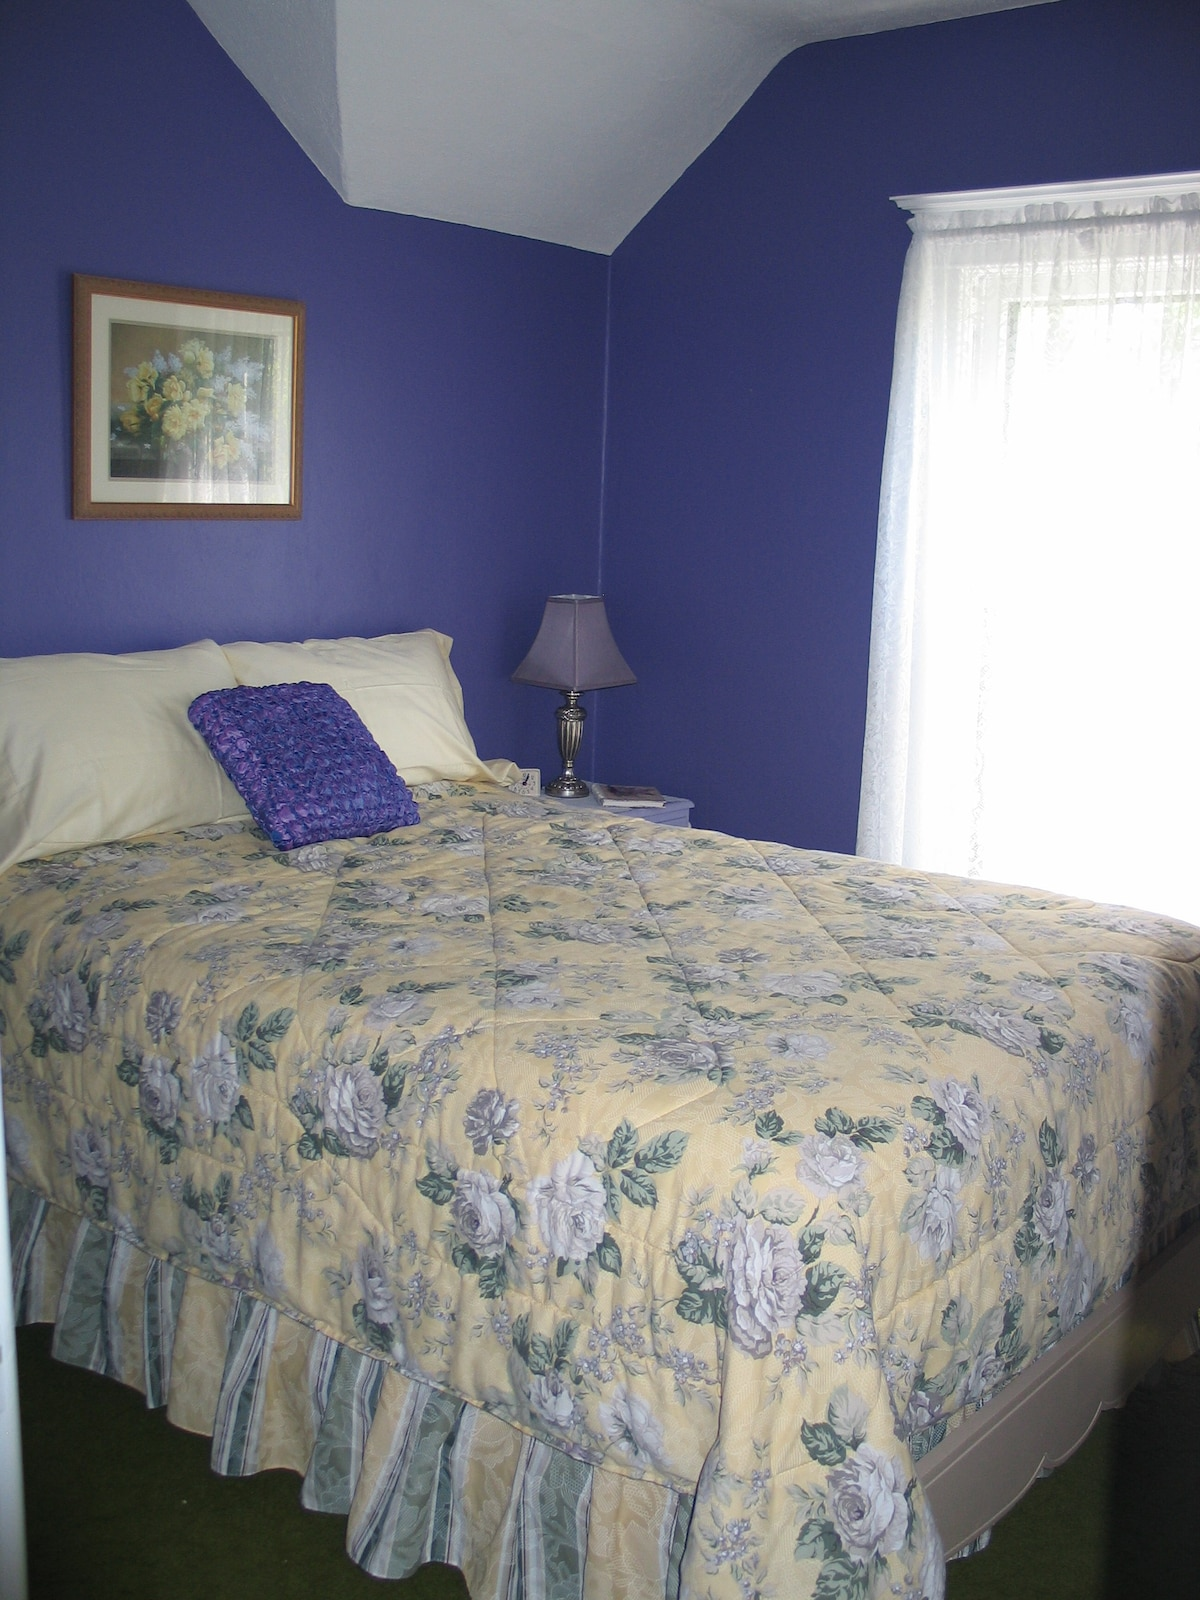 The purple room is bright & cheerful with a south facing window overlooking the large back yard